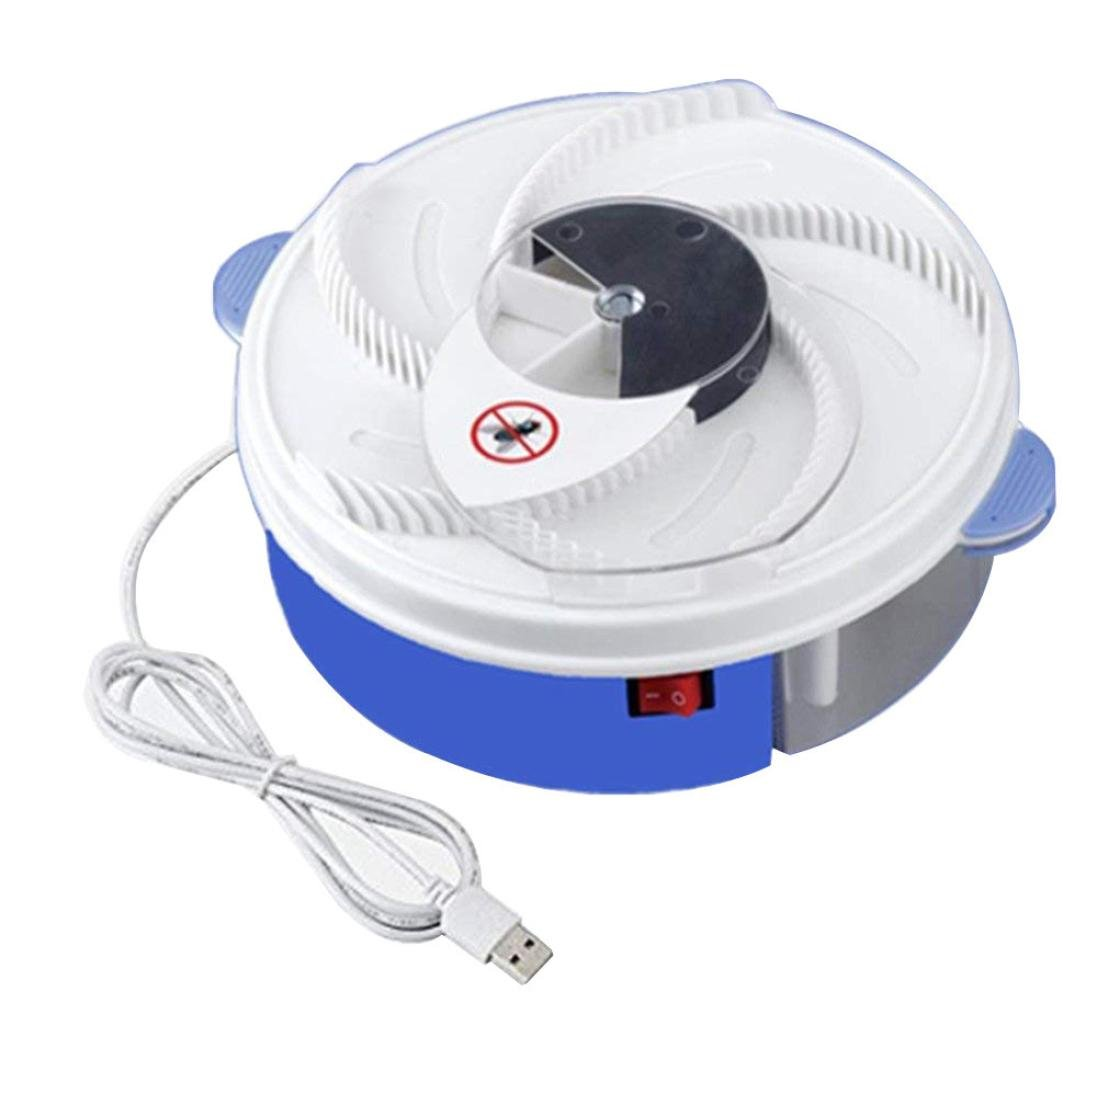 Kimanli Electric Fly Trap Device with Trapping Food - White USB Cable - Electric Flycatcher Artifact